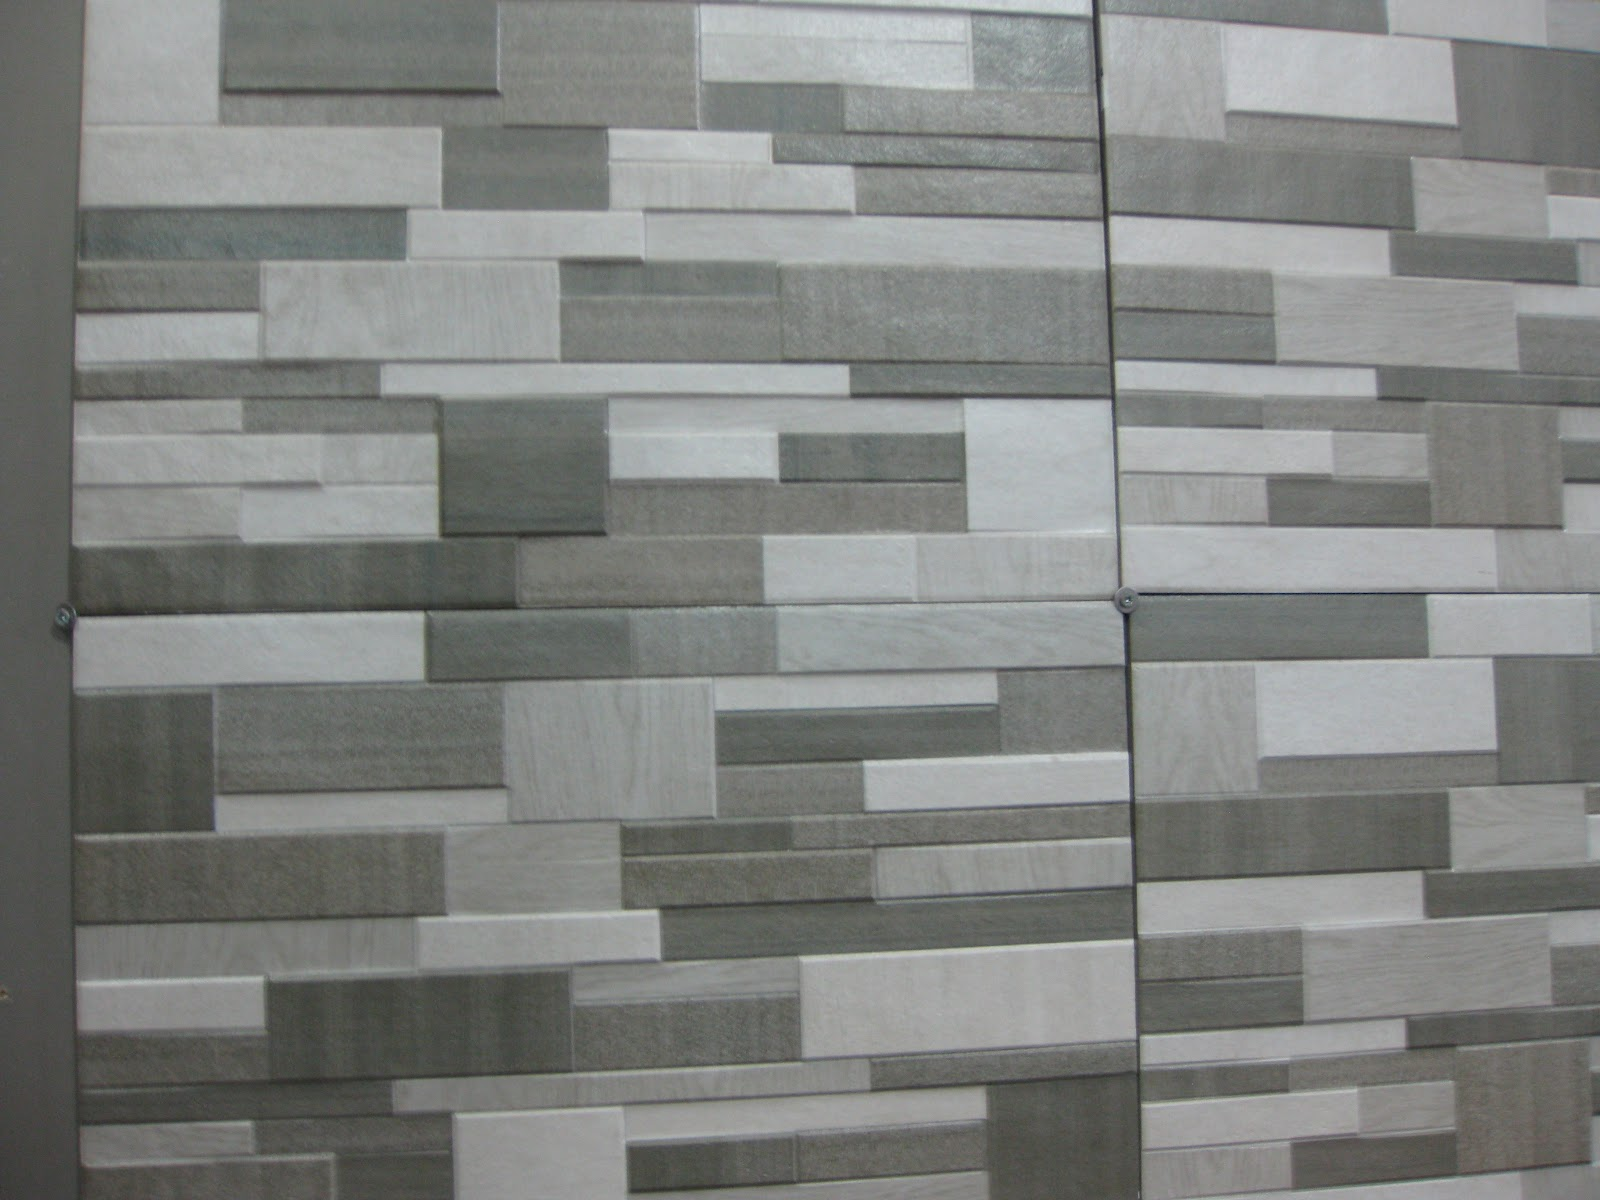 Mariwasa Kitchen Tiles Design